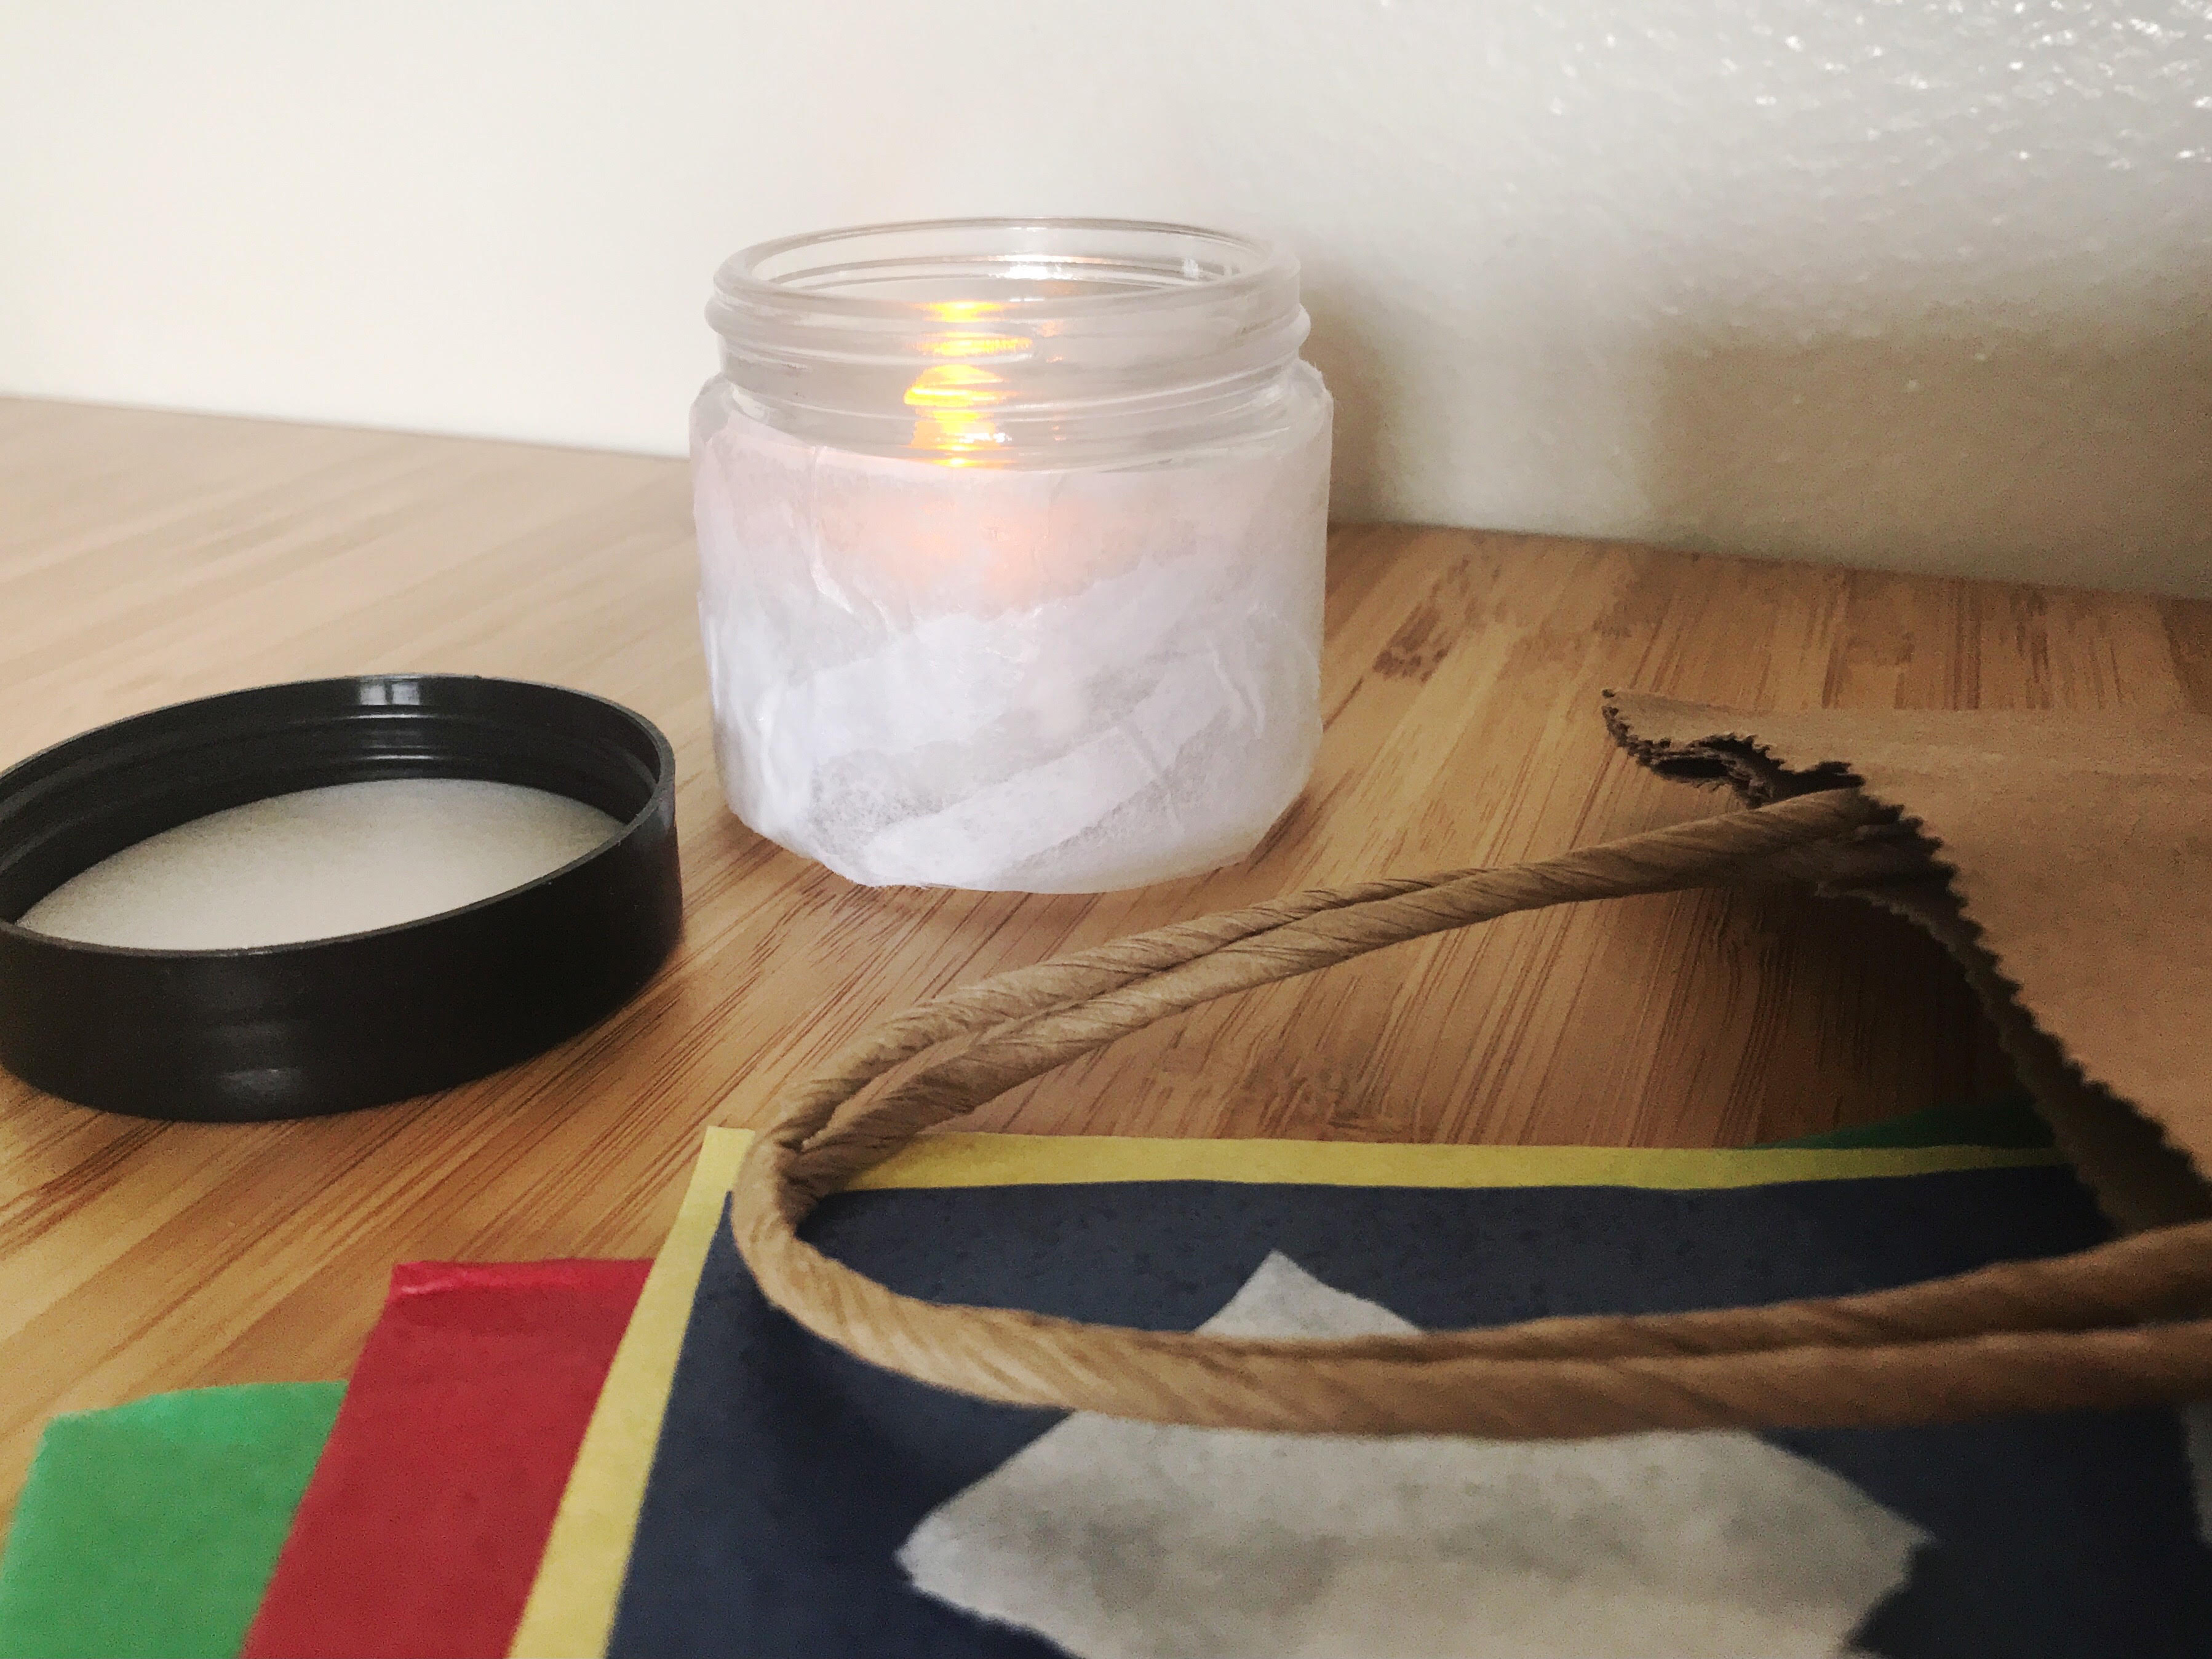 Photo of contents of grab and go kit: tissue paper, jar, battery operated candle